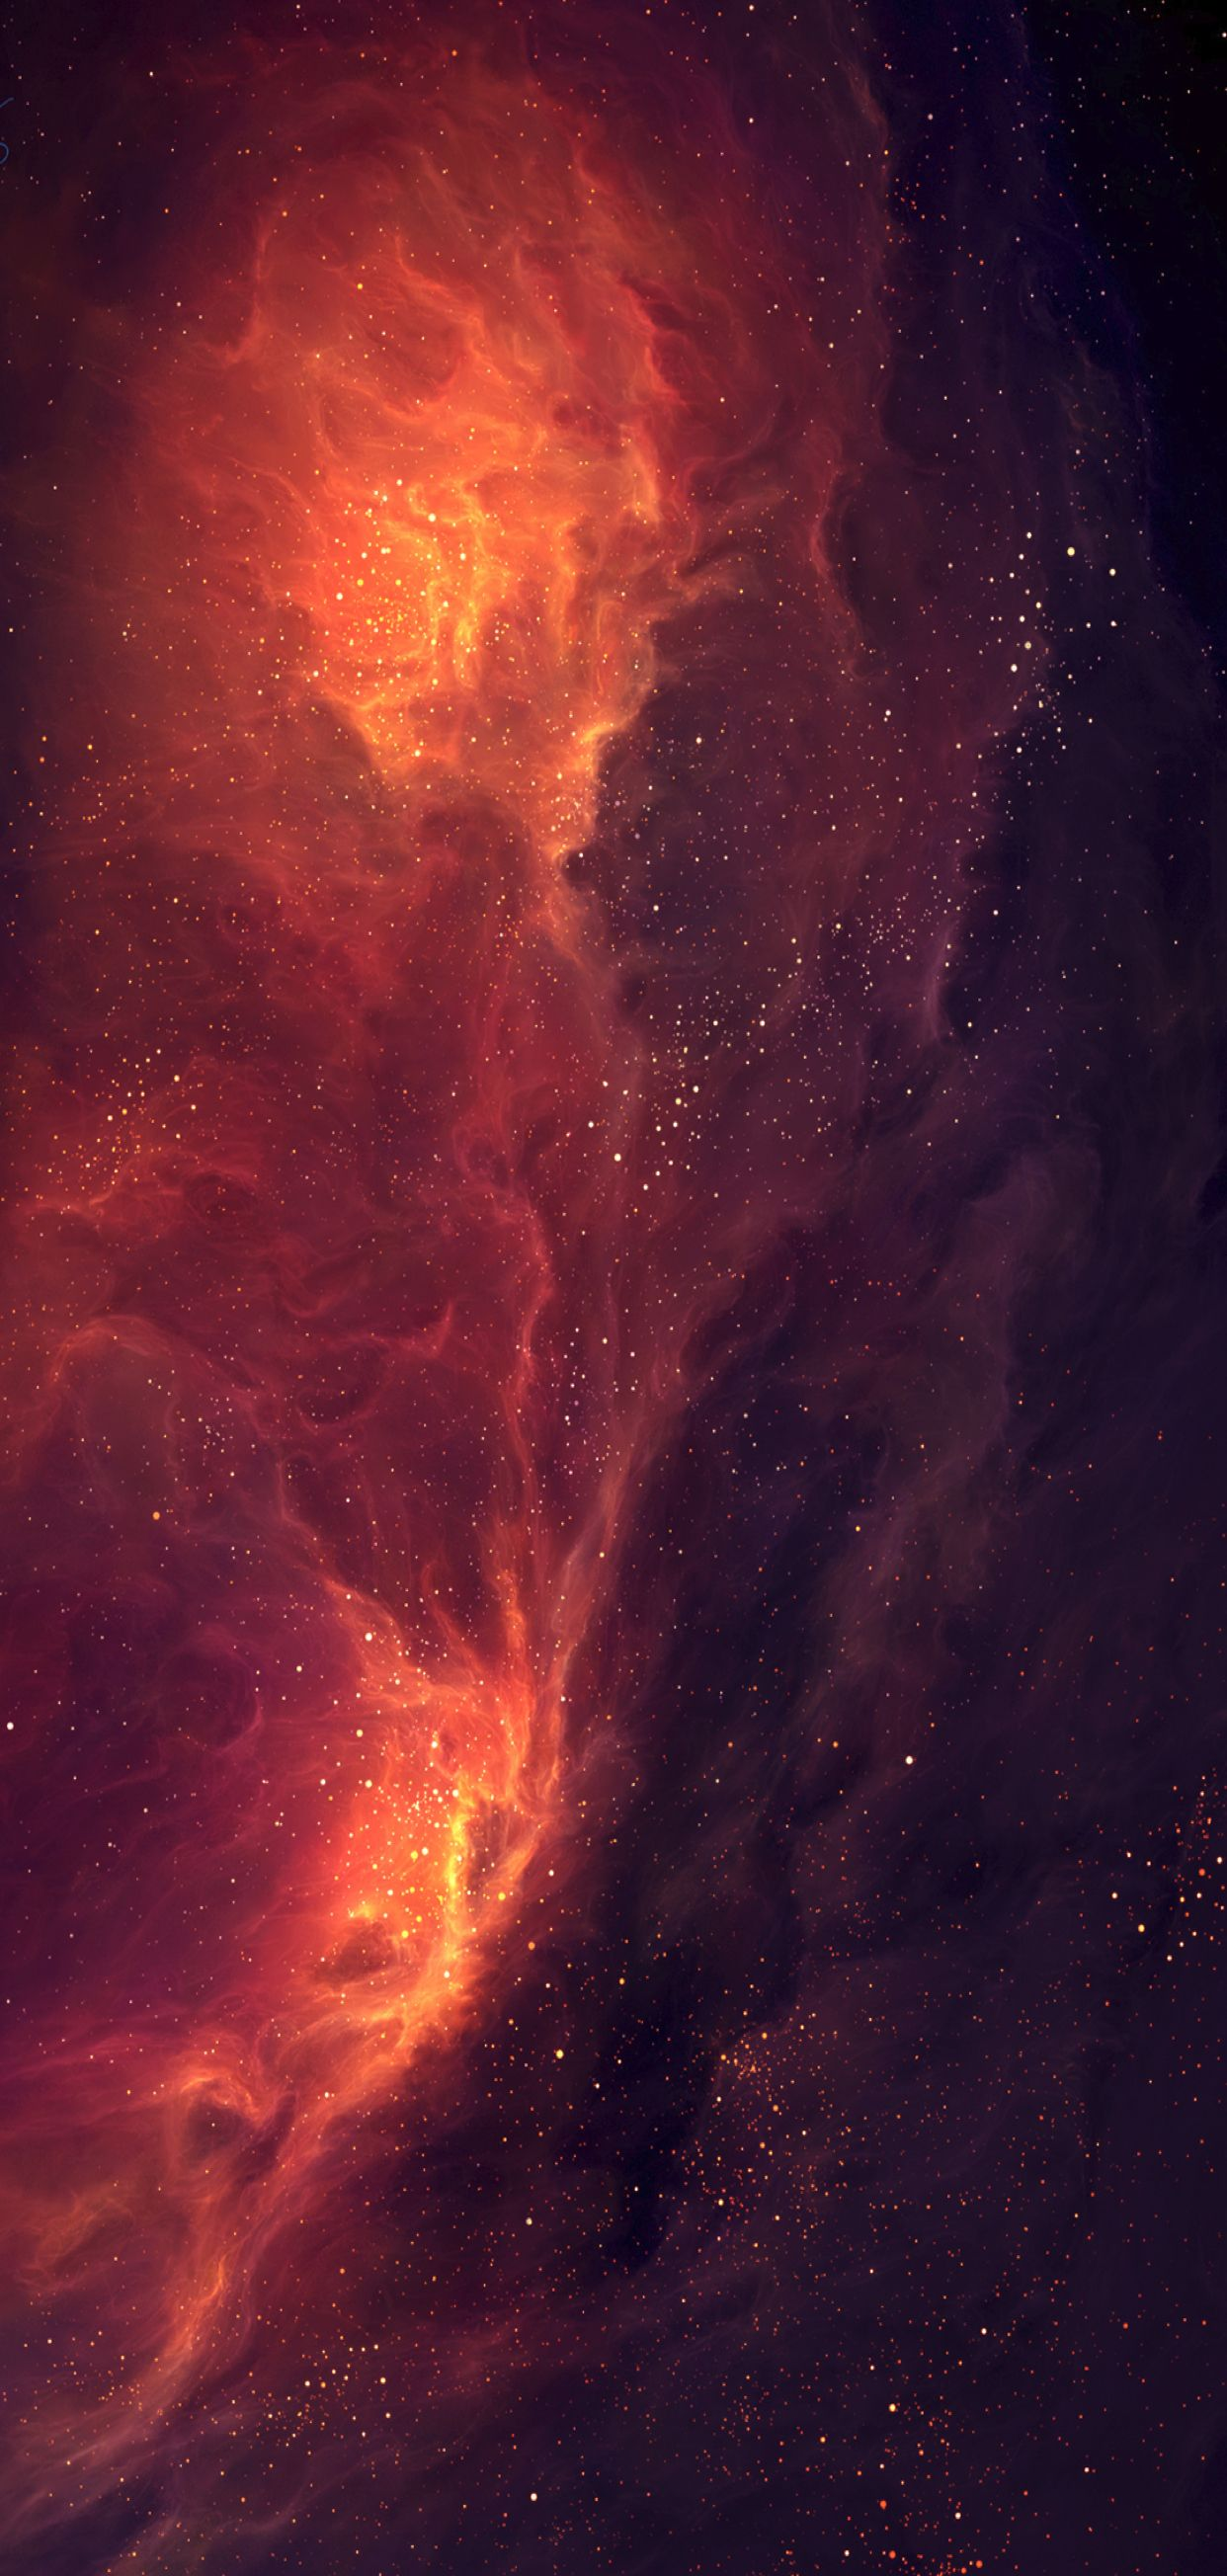 Ios 11 Iphone X Black Orange Fire Space Stars Planet